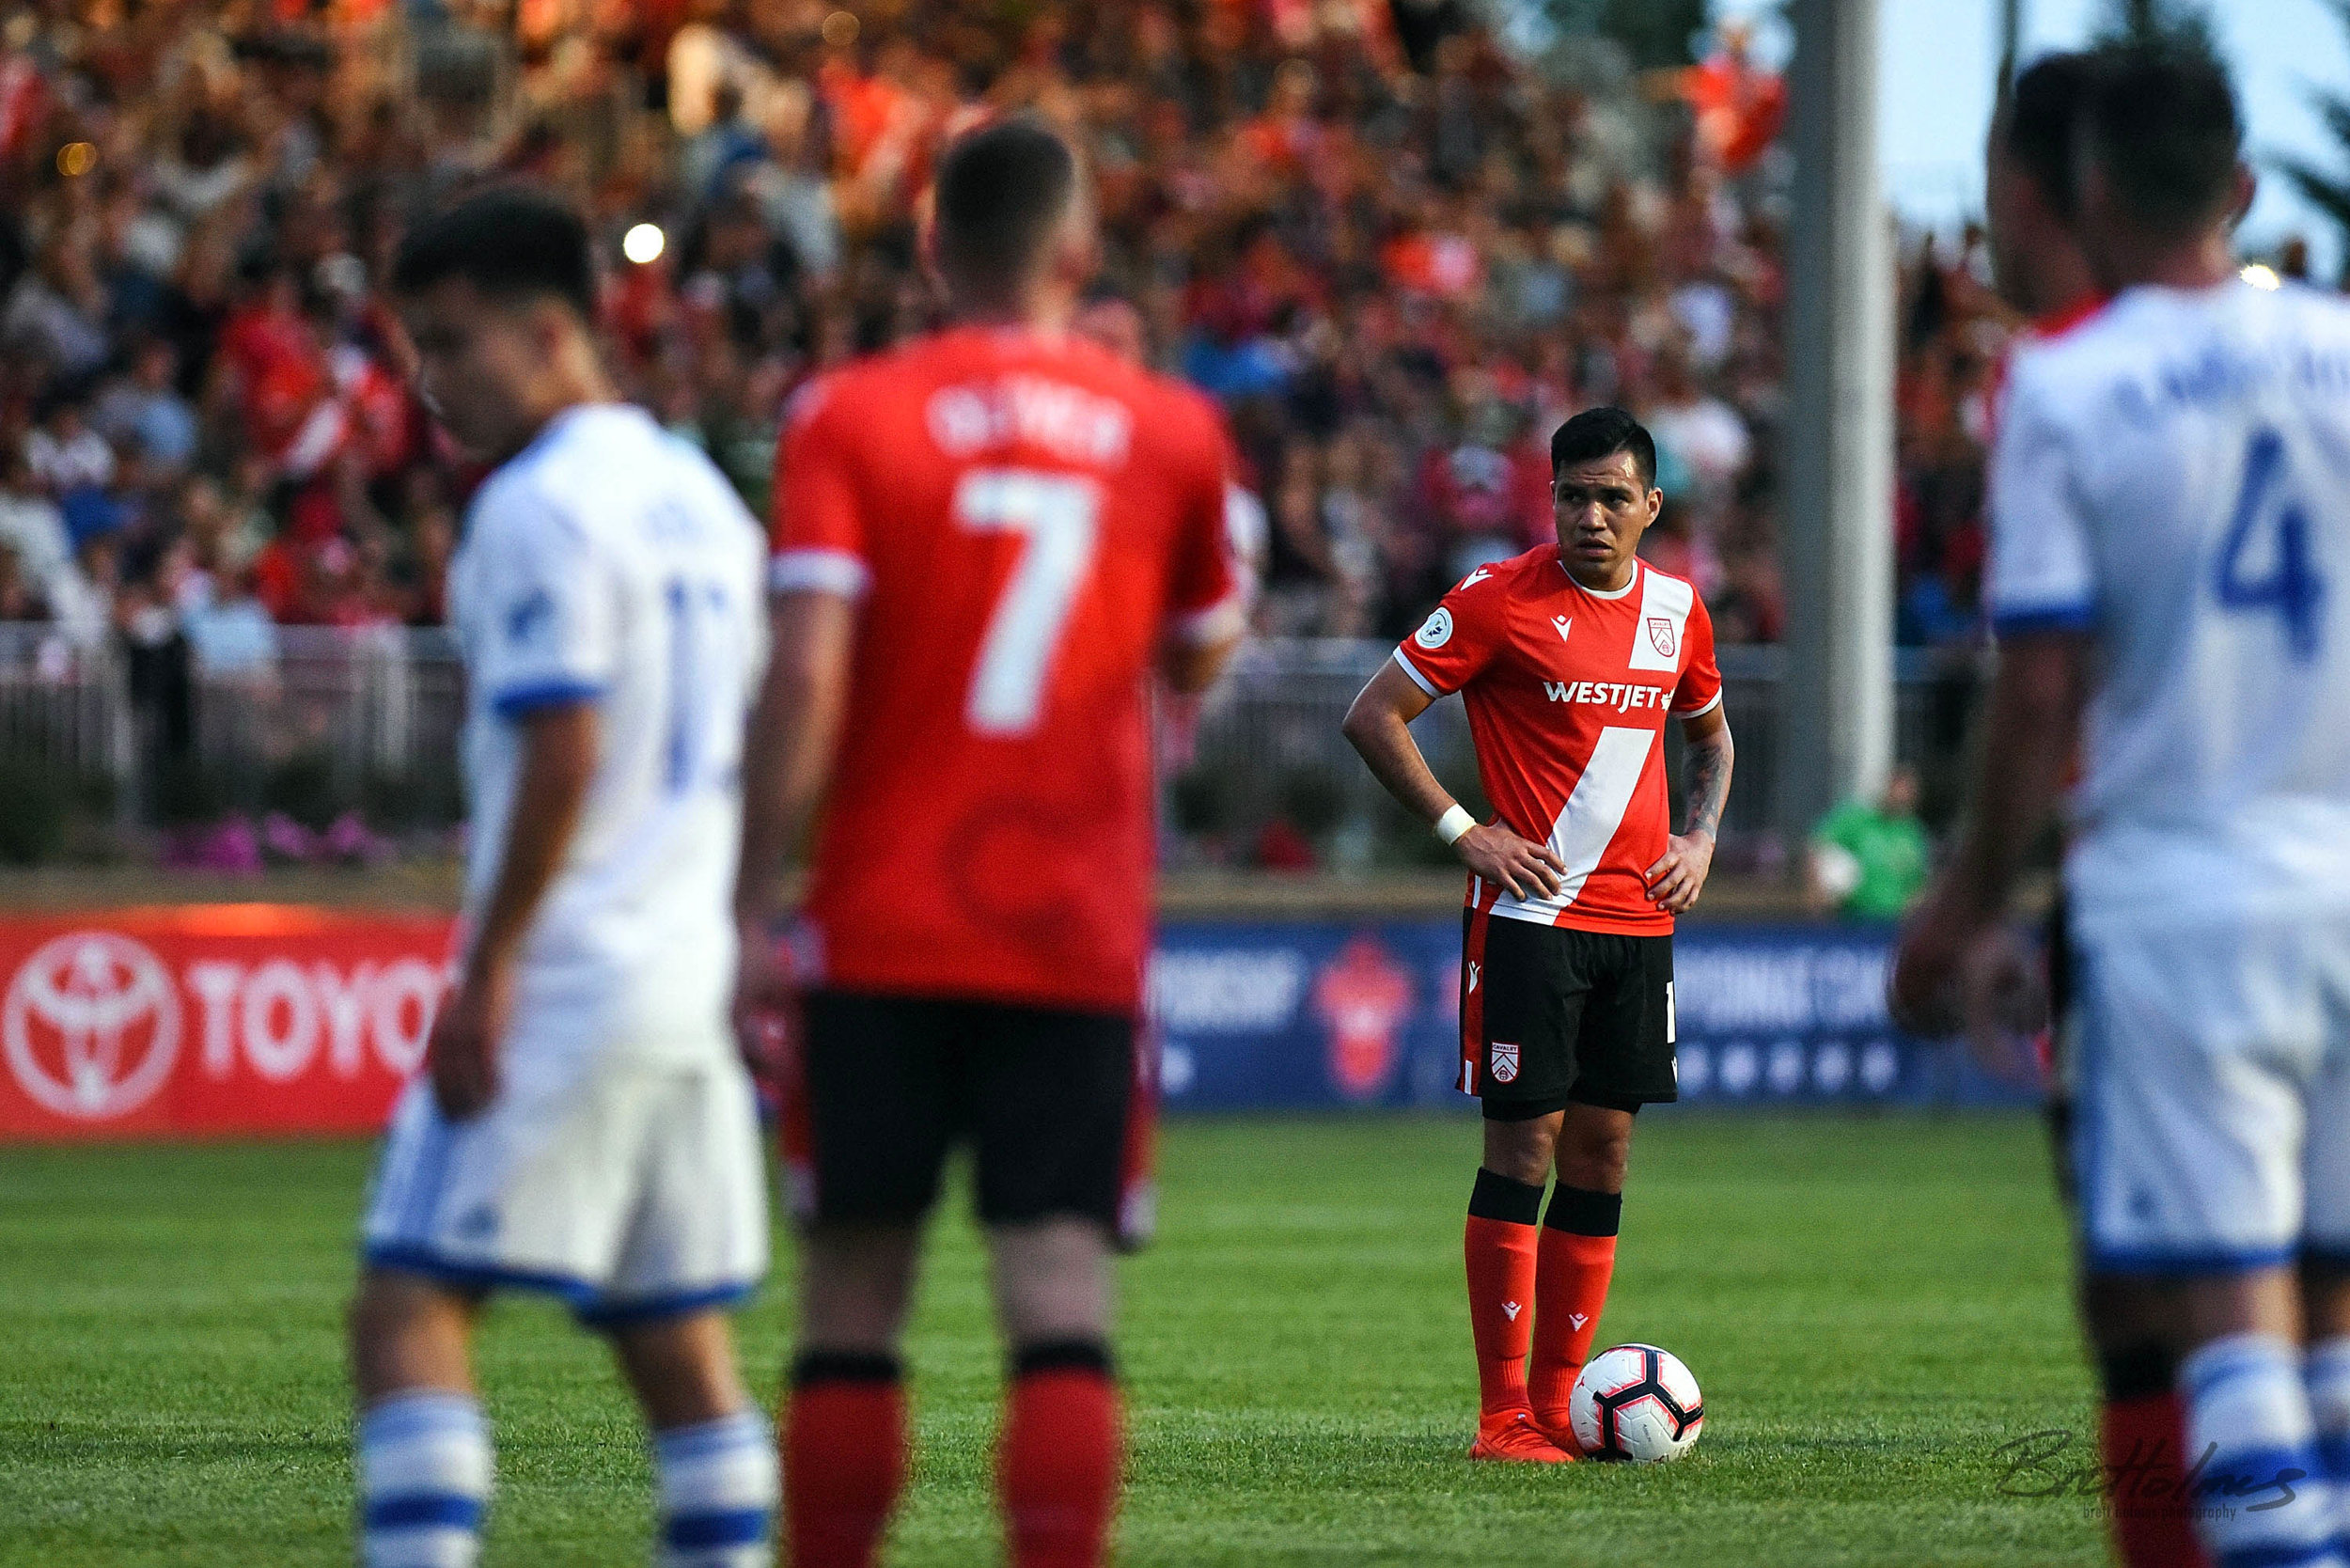 CALGARY, AB - AUGUST 14: Cavalry FC midfielder José Escalante (11) prepares for a free kick during the second half in the second leg of a Canadian Championship semifinal match between the Montreal Impact and Cavalry FC on August 14, 2019, at ATCO Field at Spruce Meadows in Calgary, AB. (Photo by Brett Holmes/Icon Sportswire)